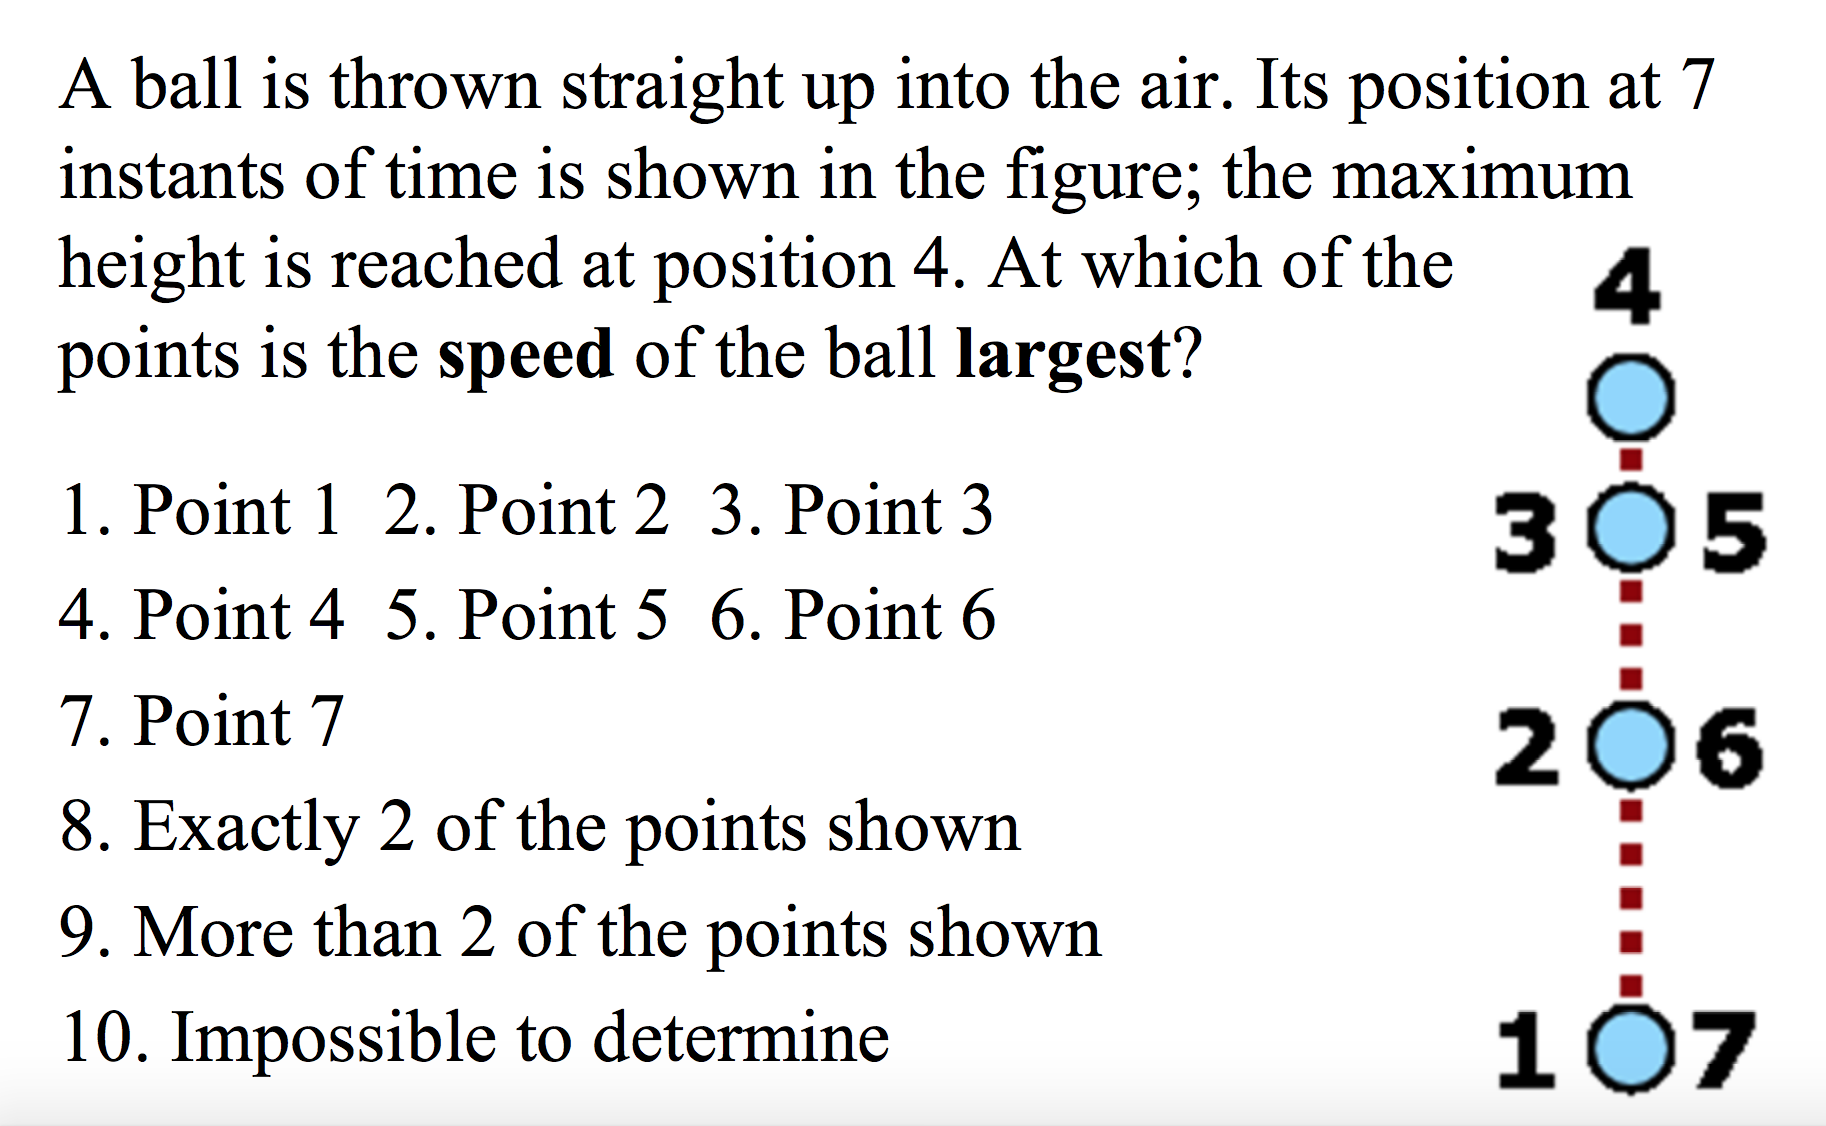 A ball is thrown straight up into the air. Its position at 7 instants of time is shown in the figure; the maximum height is reached at position 4. At which of the points is the speed of the ball largest? 4 1. Point 1 2. Point 2 3. Point 3 3O5 4. Point 4 5. Point 5 6. Point 6 7. Point 7 206 8. Exactly 2 of the points shown 9. More than 2 of the points shown 107 10. Impossible to determine O-O.O